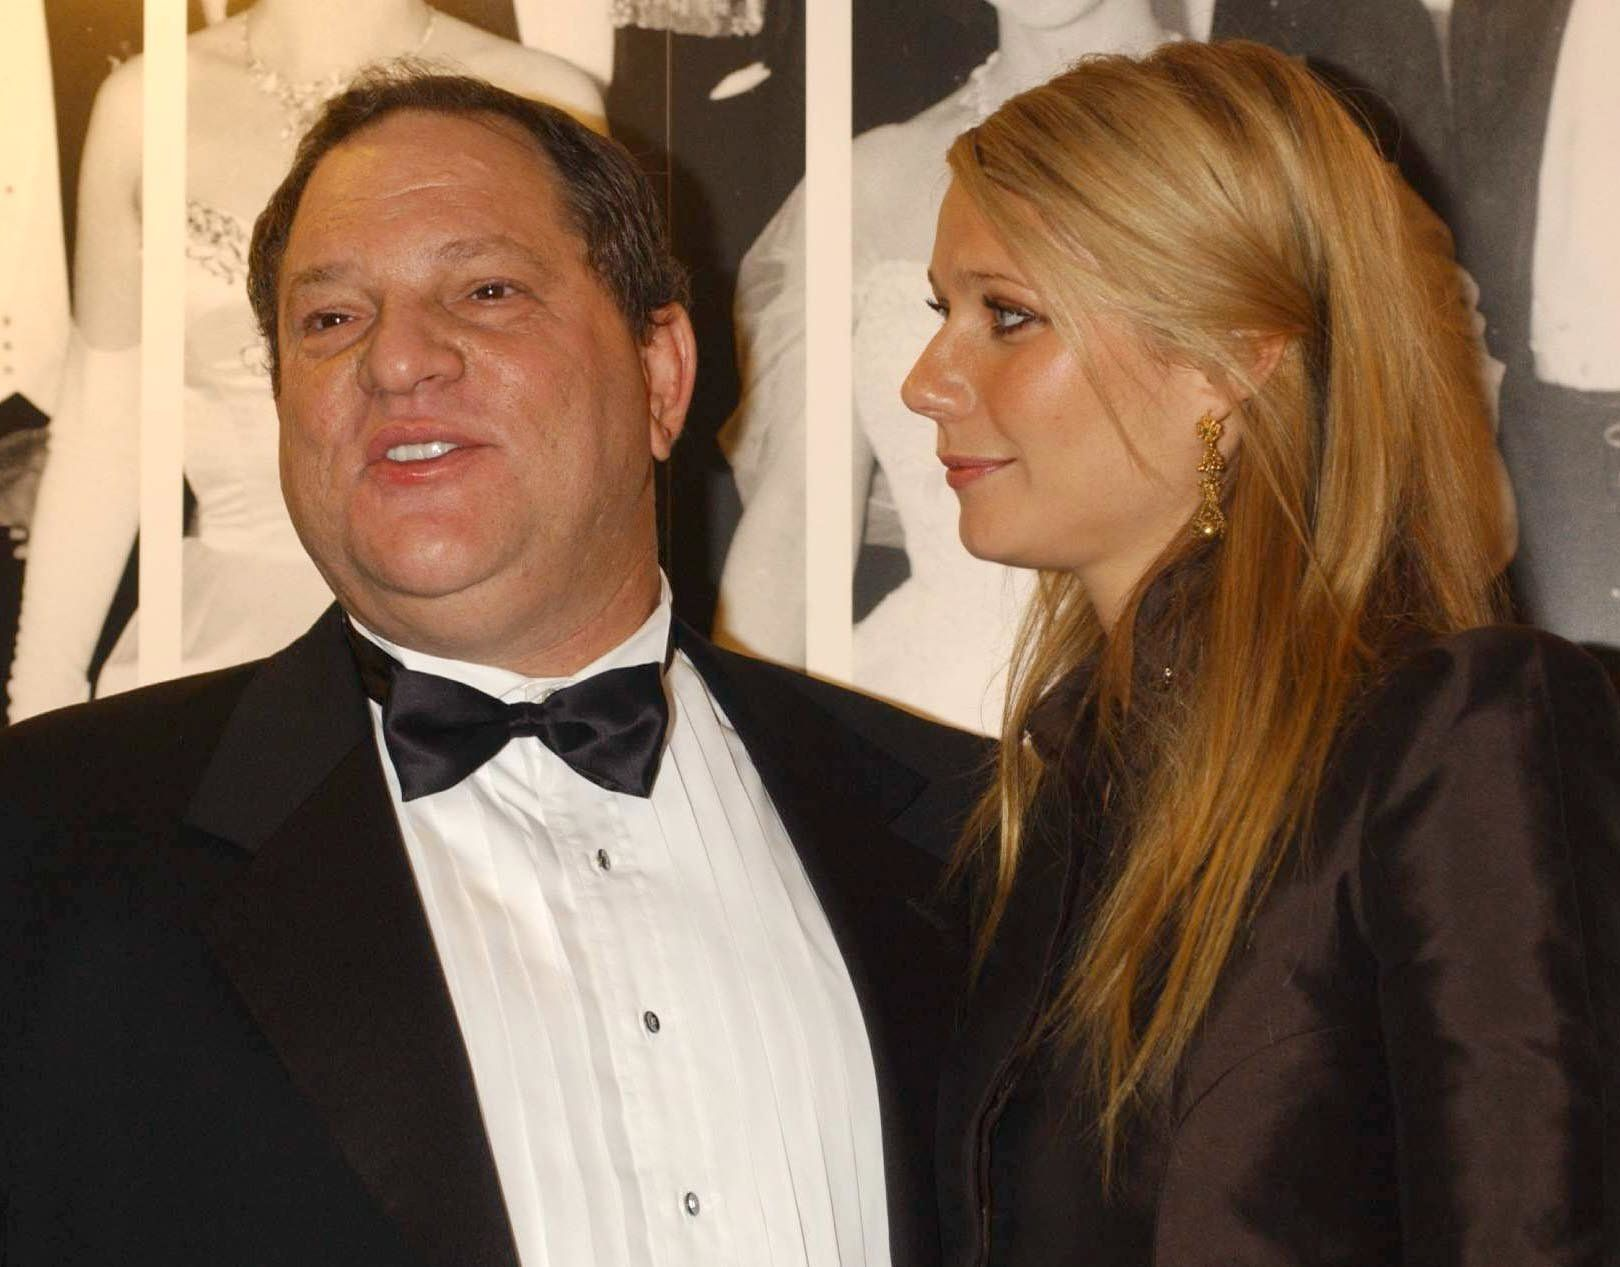 Angelina Jolie, Gwyneth Paltrow And Others Say Harvey Weinstein Harassed